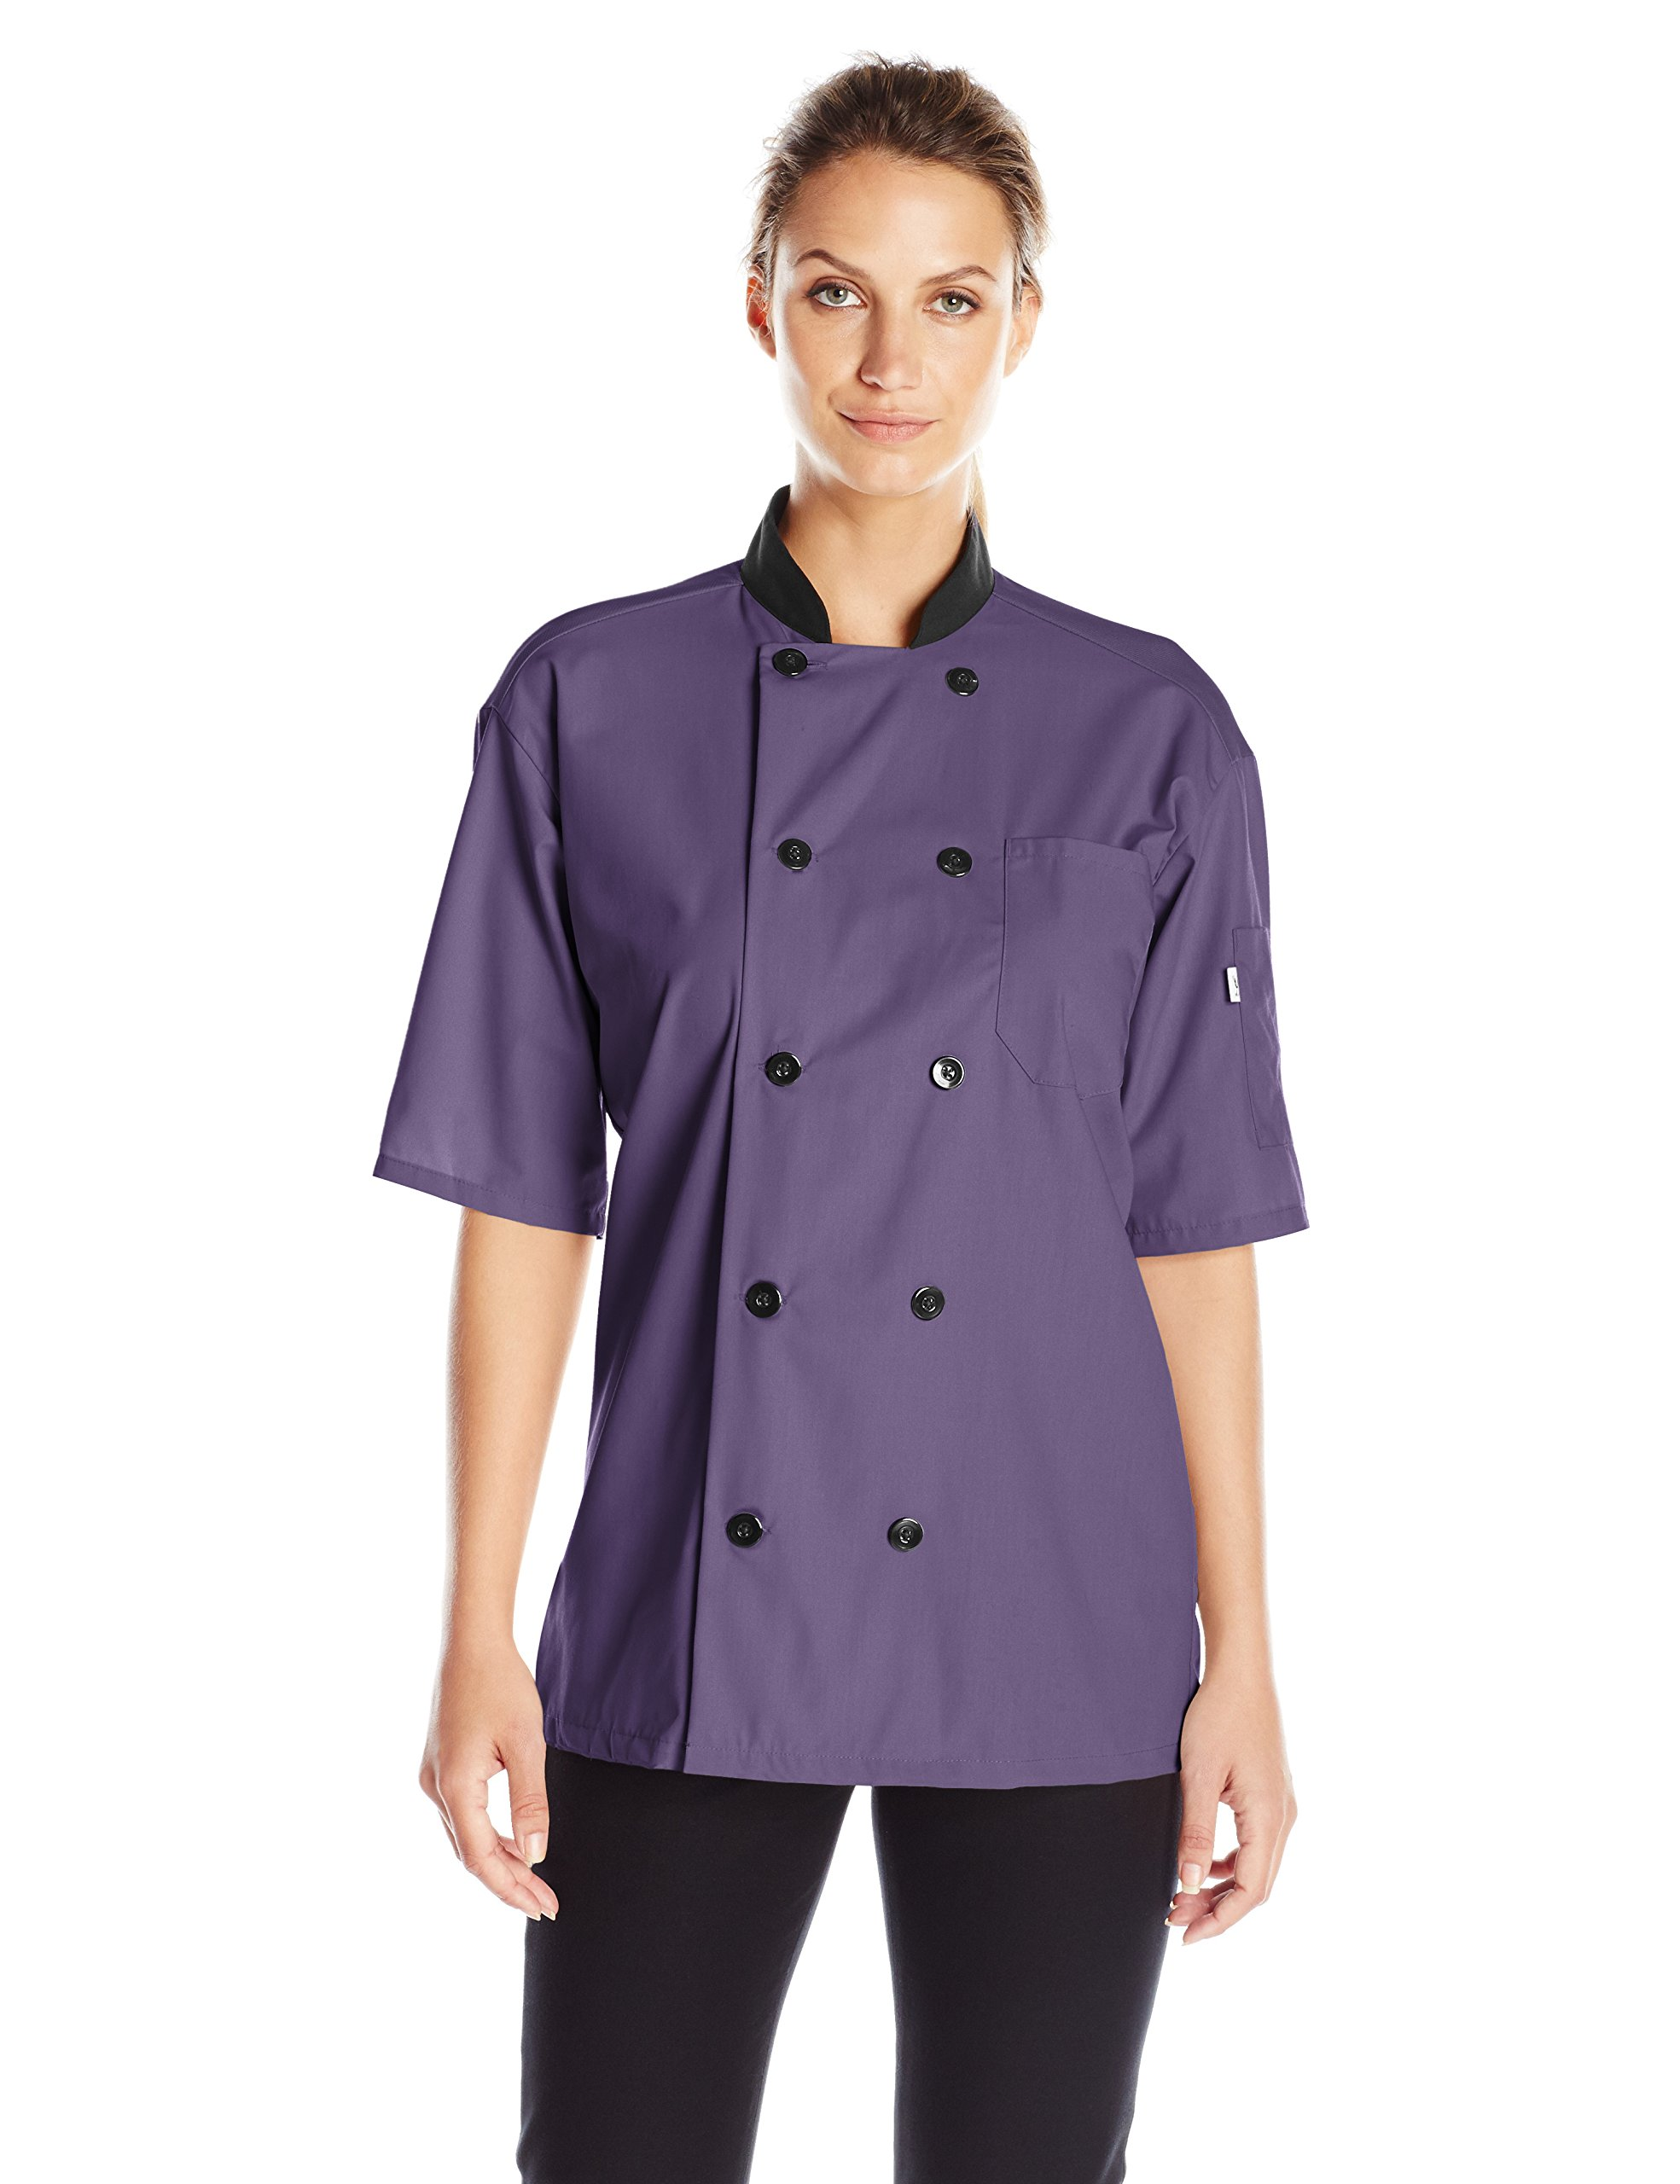 Uncommon Threads Unisex Havana Chef Coat Ss Mesh Blk TRM, Eggplant, Medium